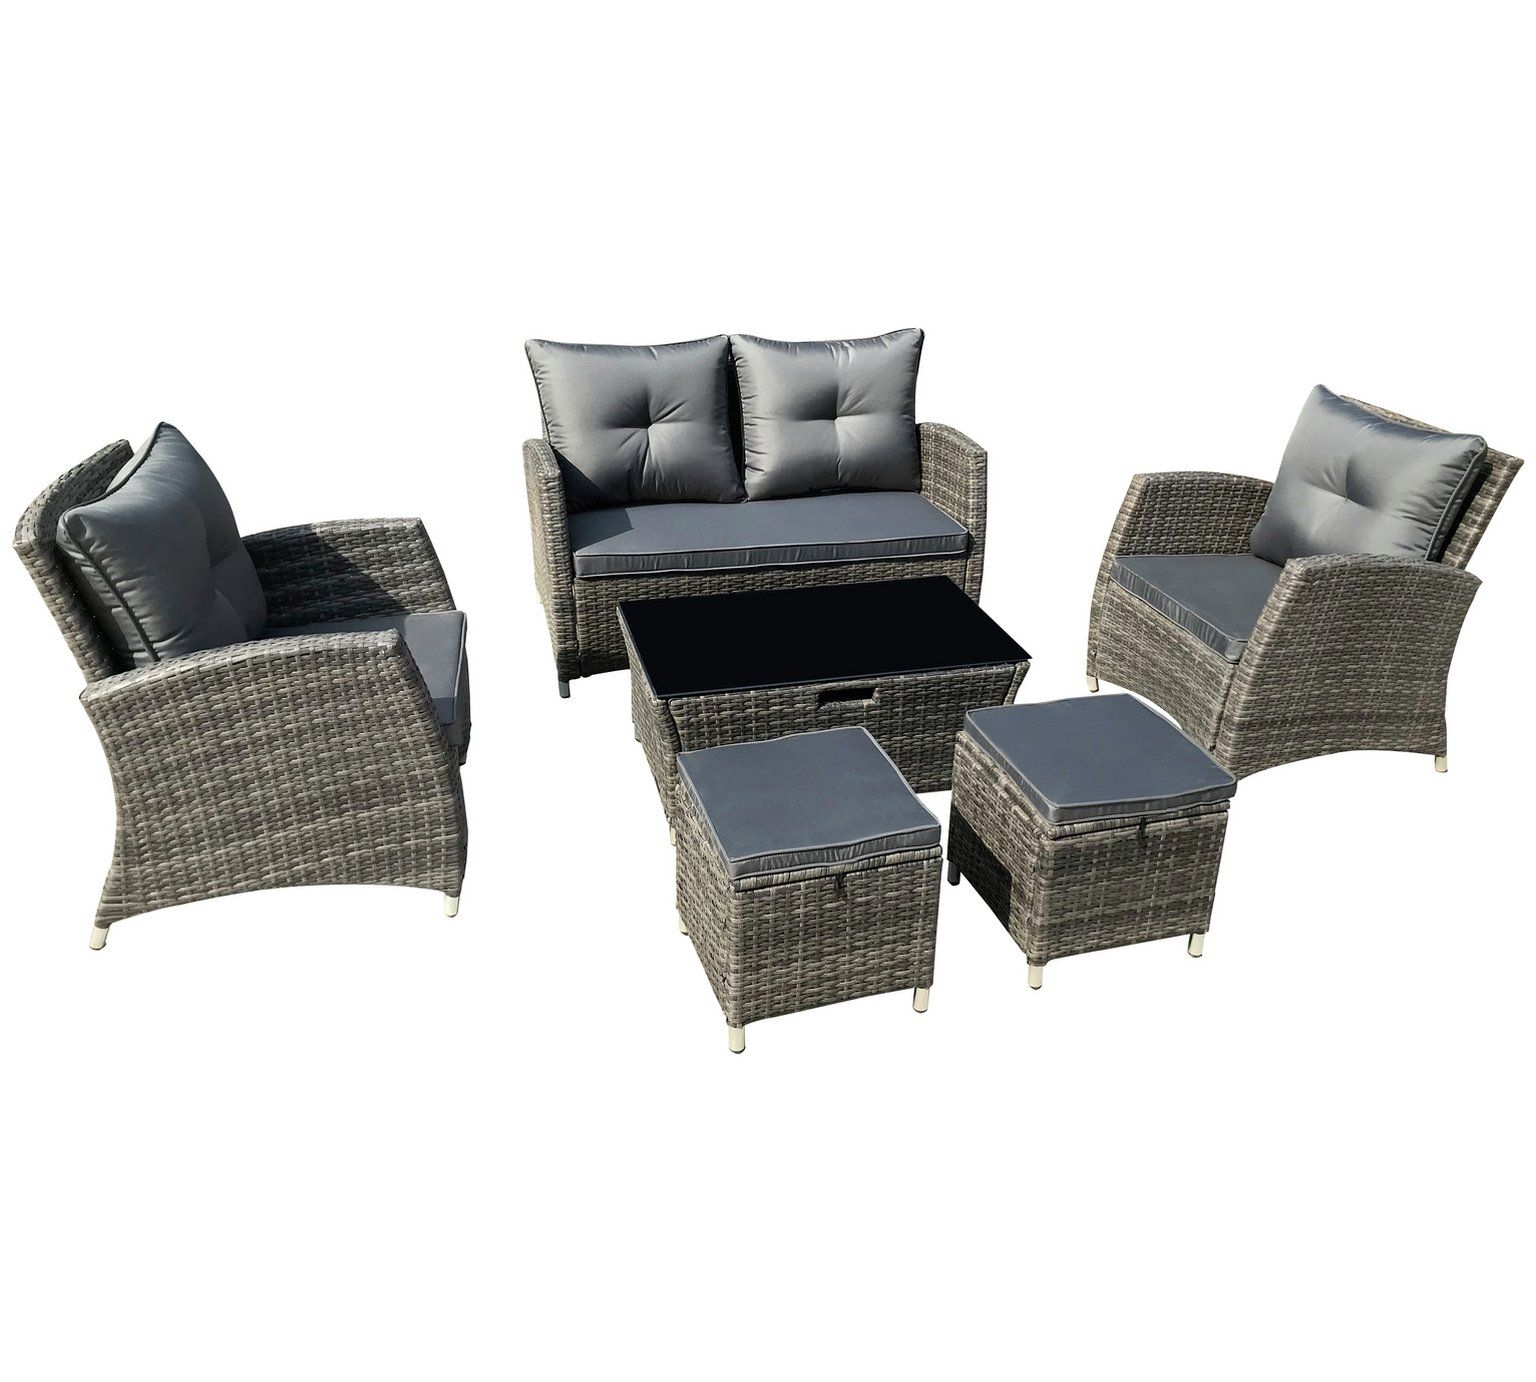 Buy Collection Rattan 7 Piece Set With Storage At Argos Co Uk Your Online Shop For Garden Table And Chair Sets G Sofa Set Garden Table And Chairs Argos Home